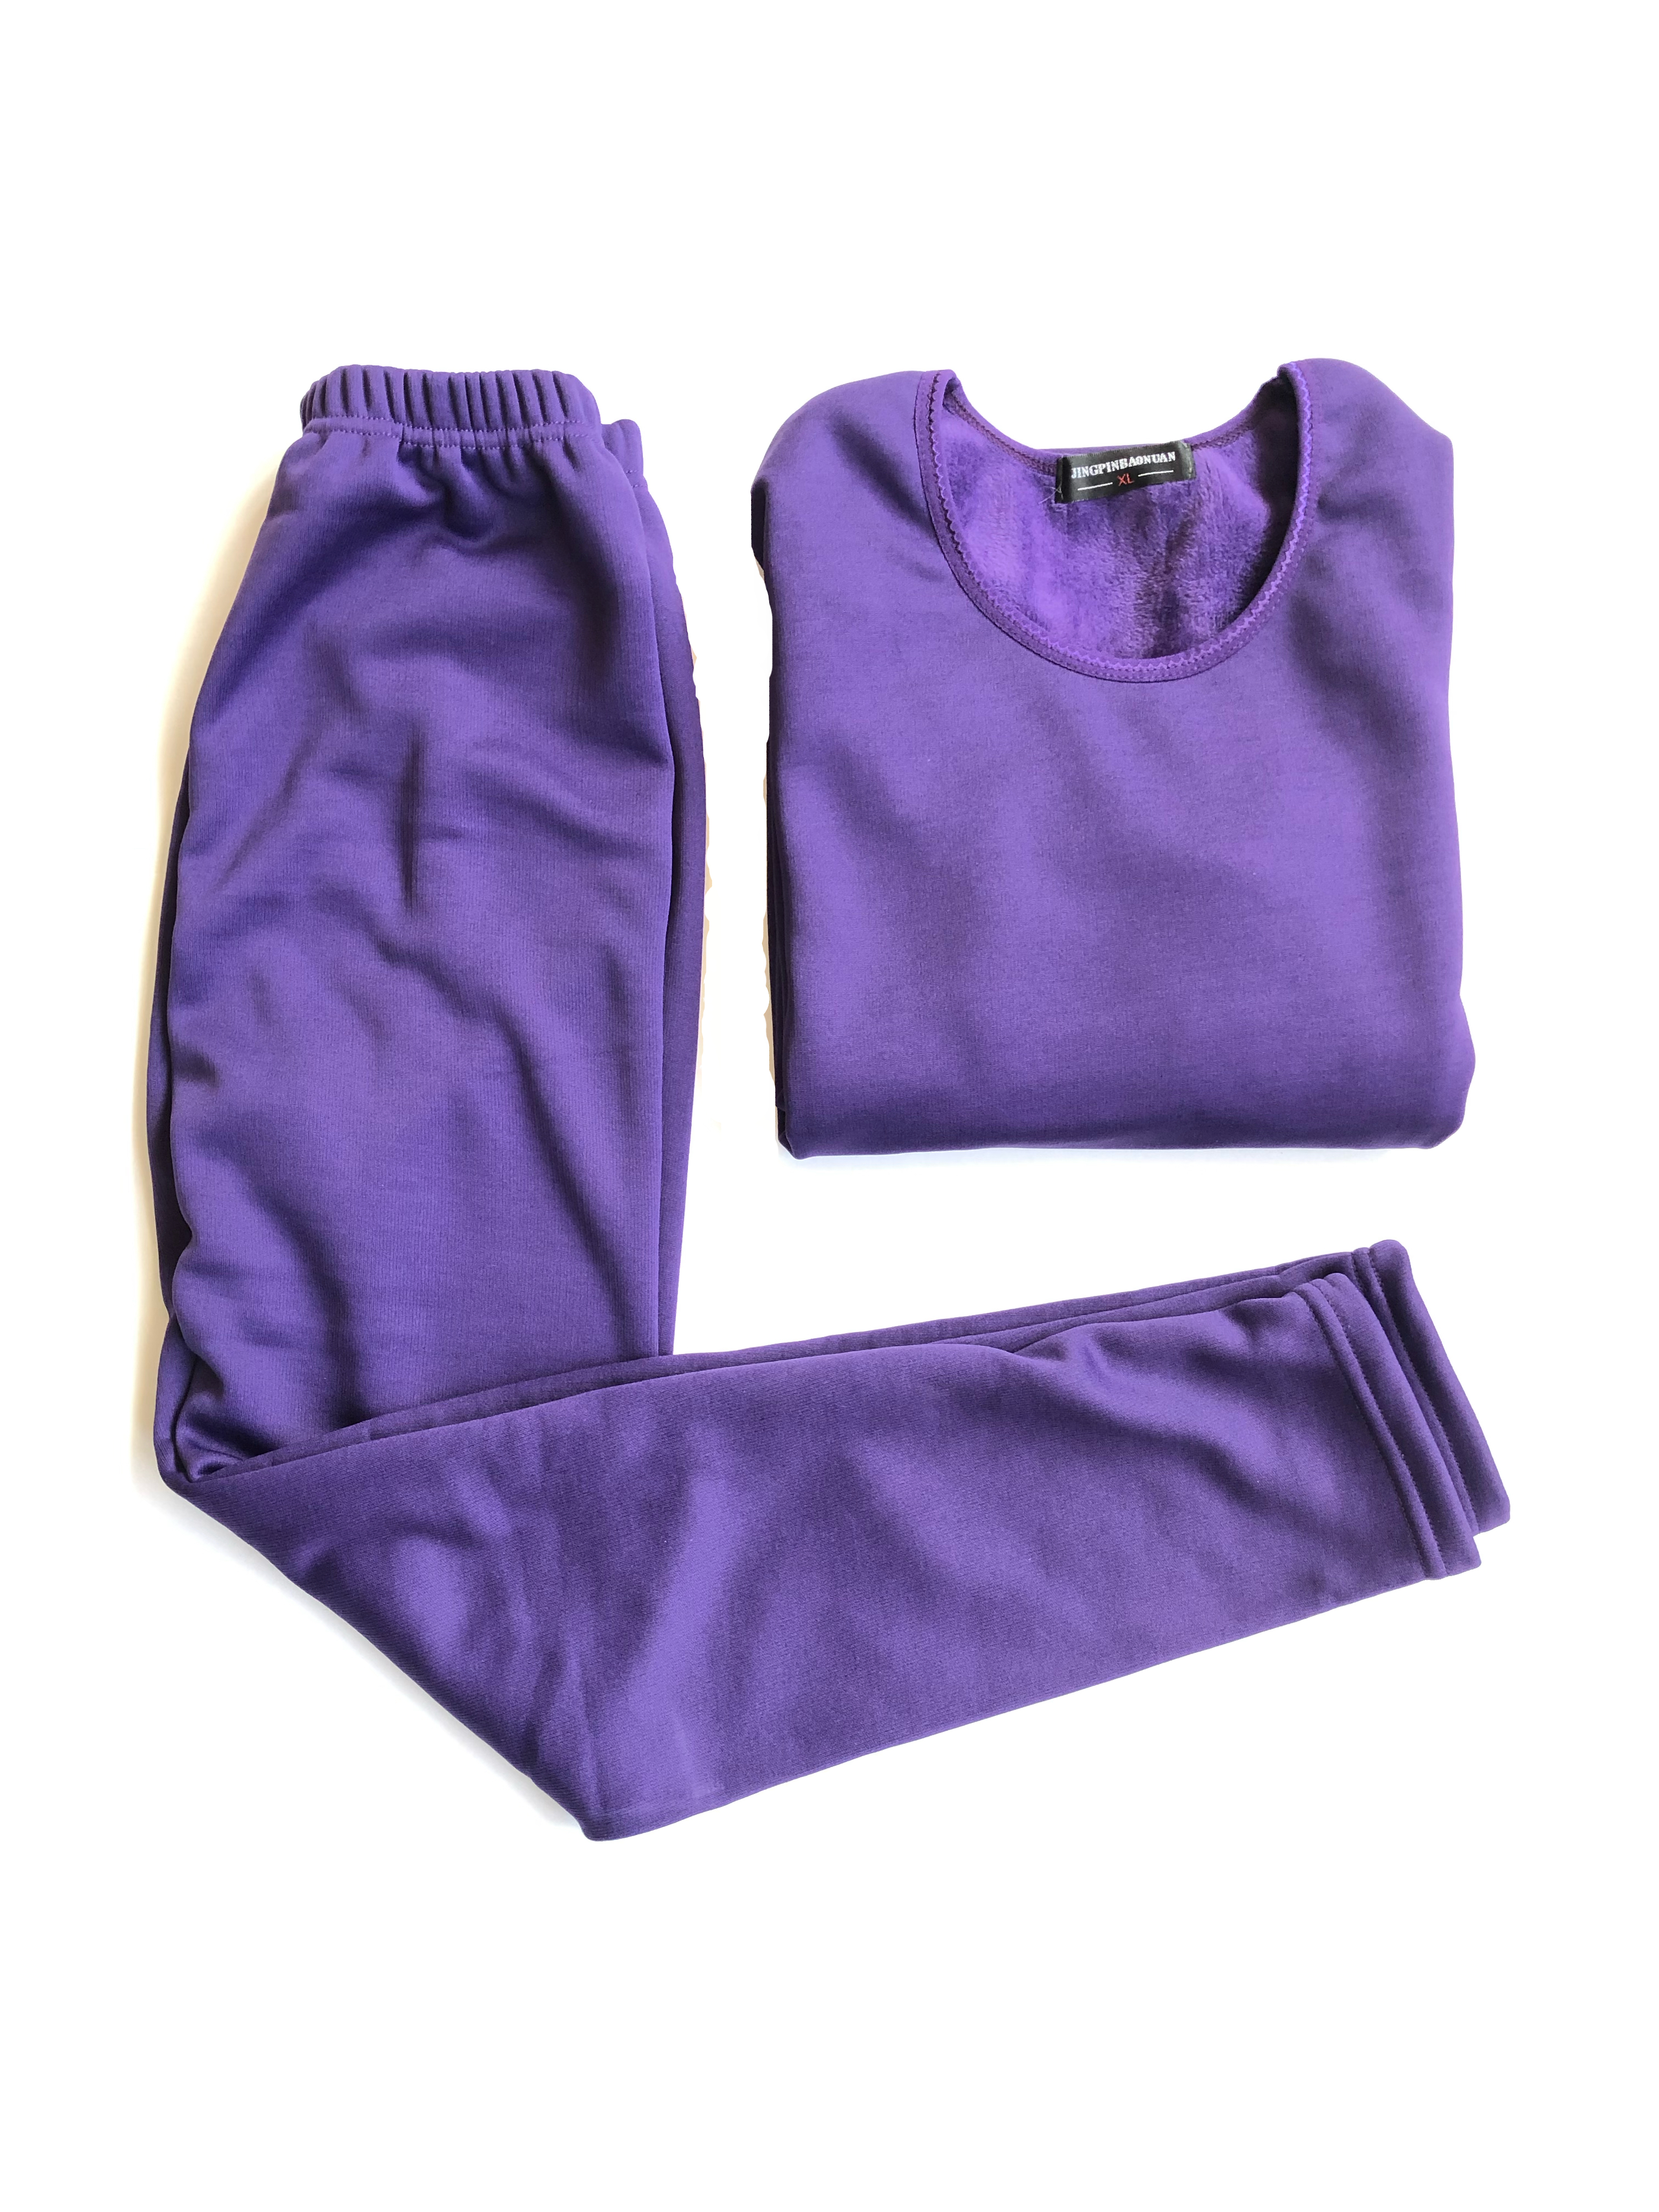 Women's Extreme Cold Waffle Knit Purple Thermal Top and Bottom Set